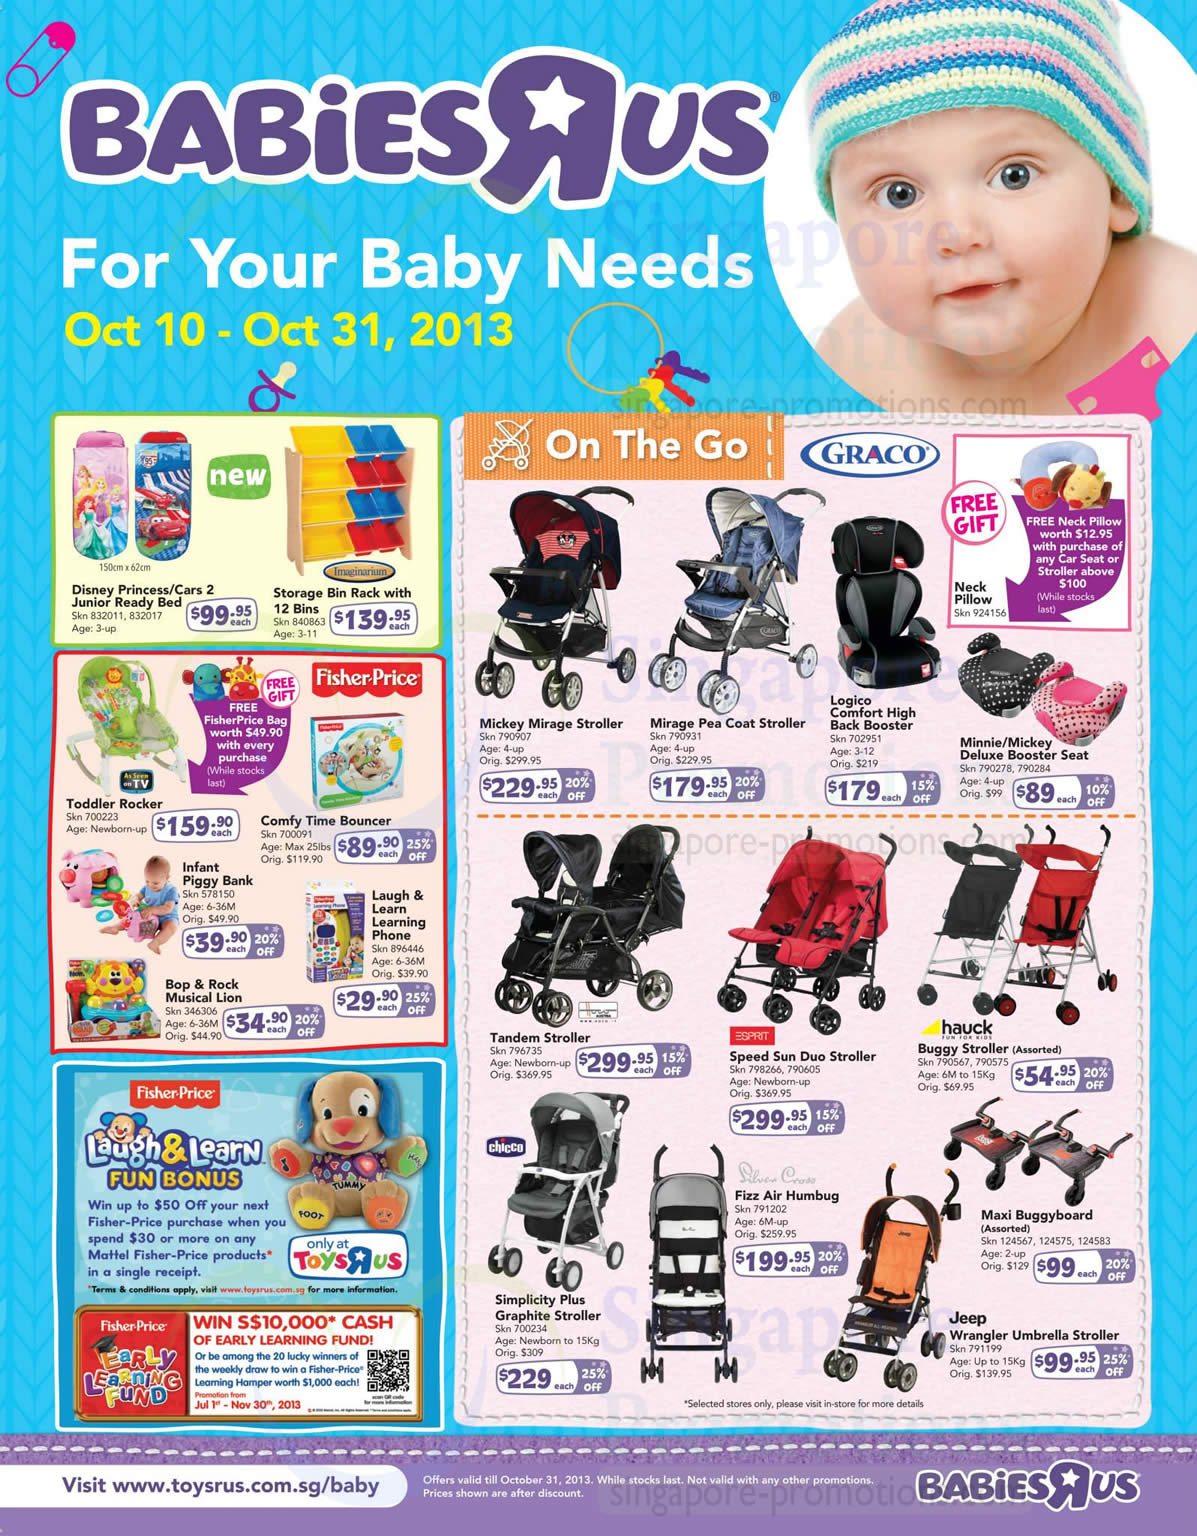 On The Go Strollers, Fisher-Price, Maxi, Jeep, Hauck, Esprit